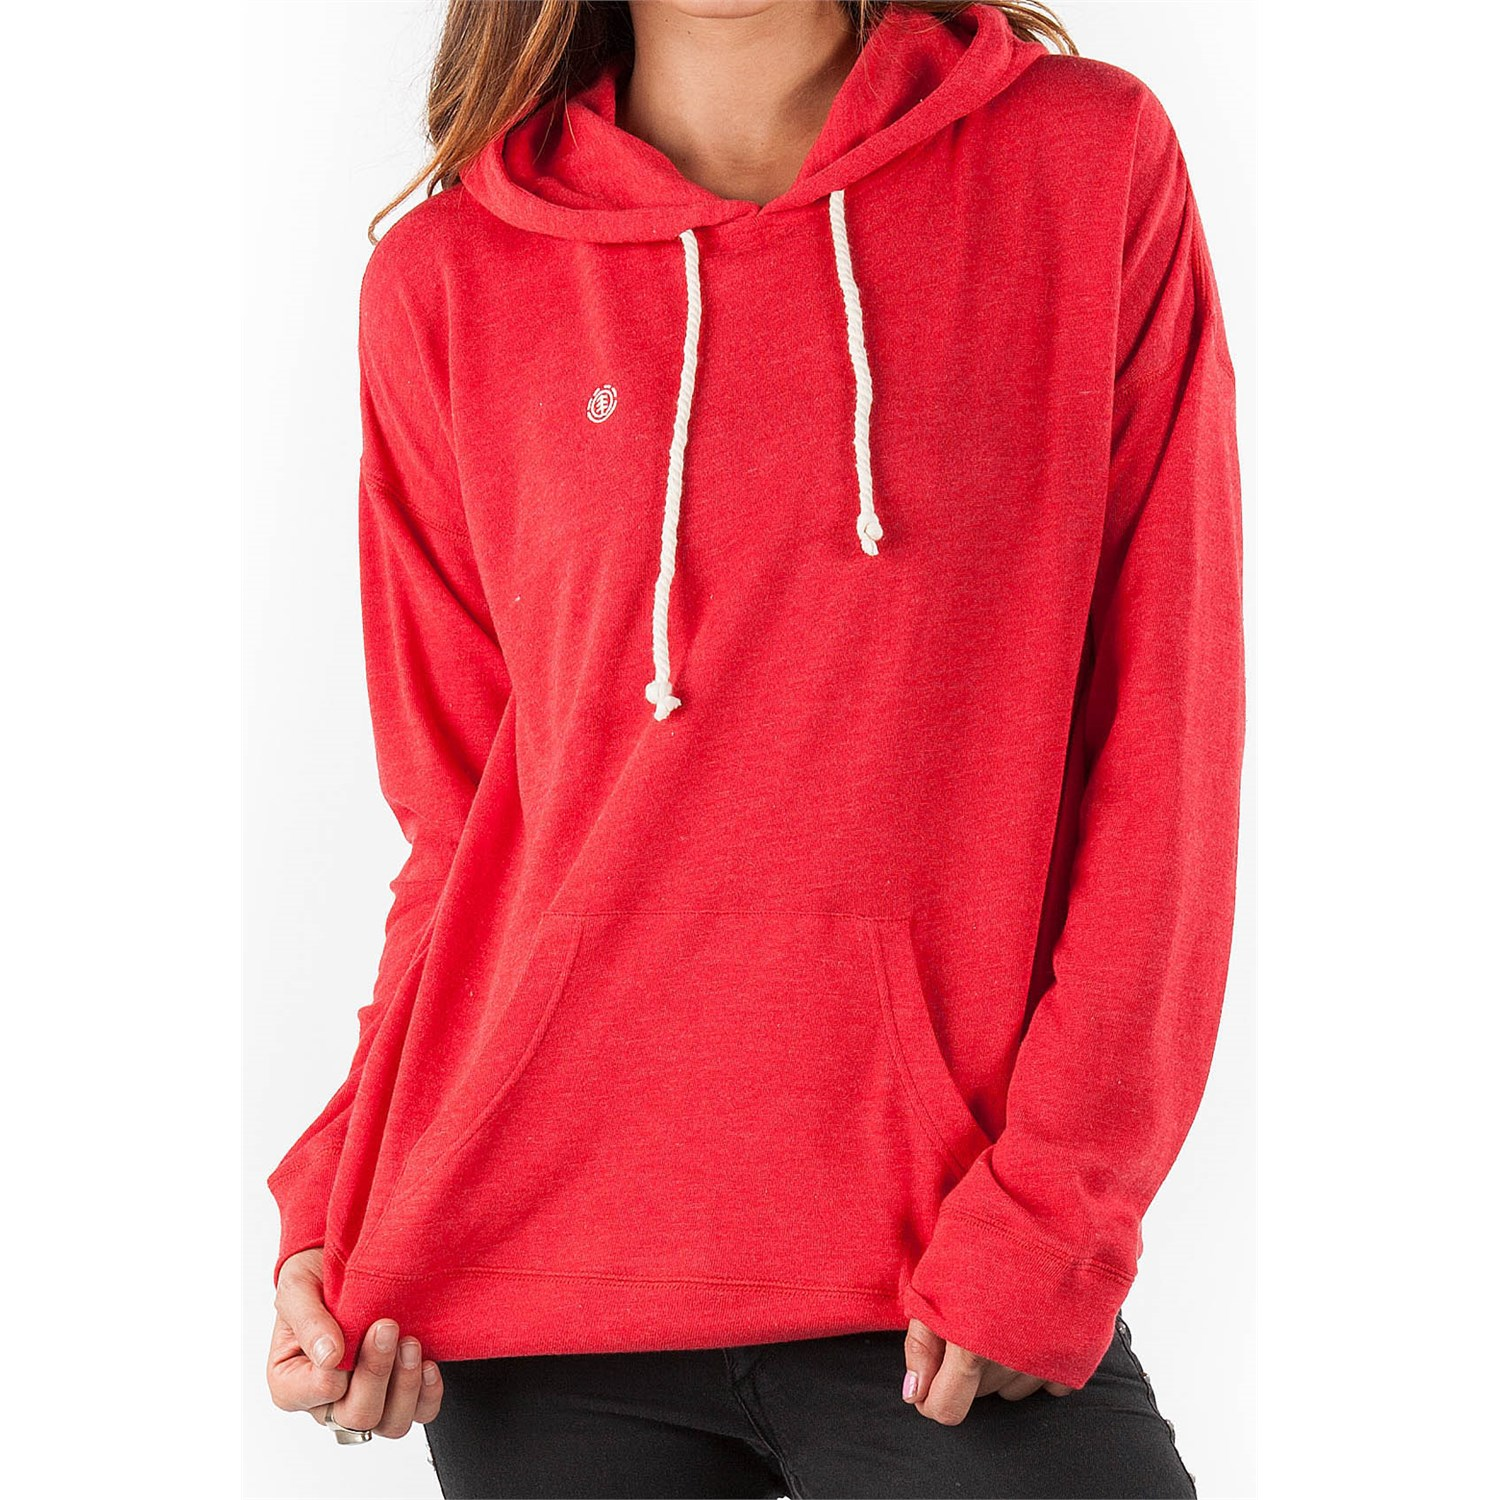 Element Twirl Fleece Sweatshirt - Women's | evo